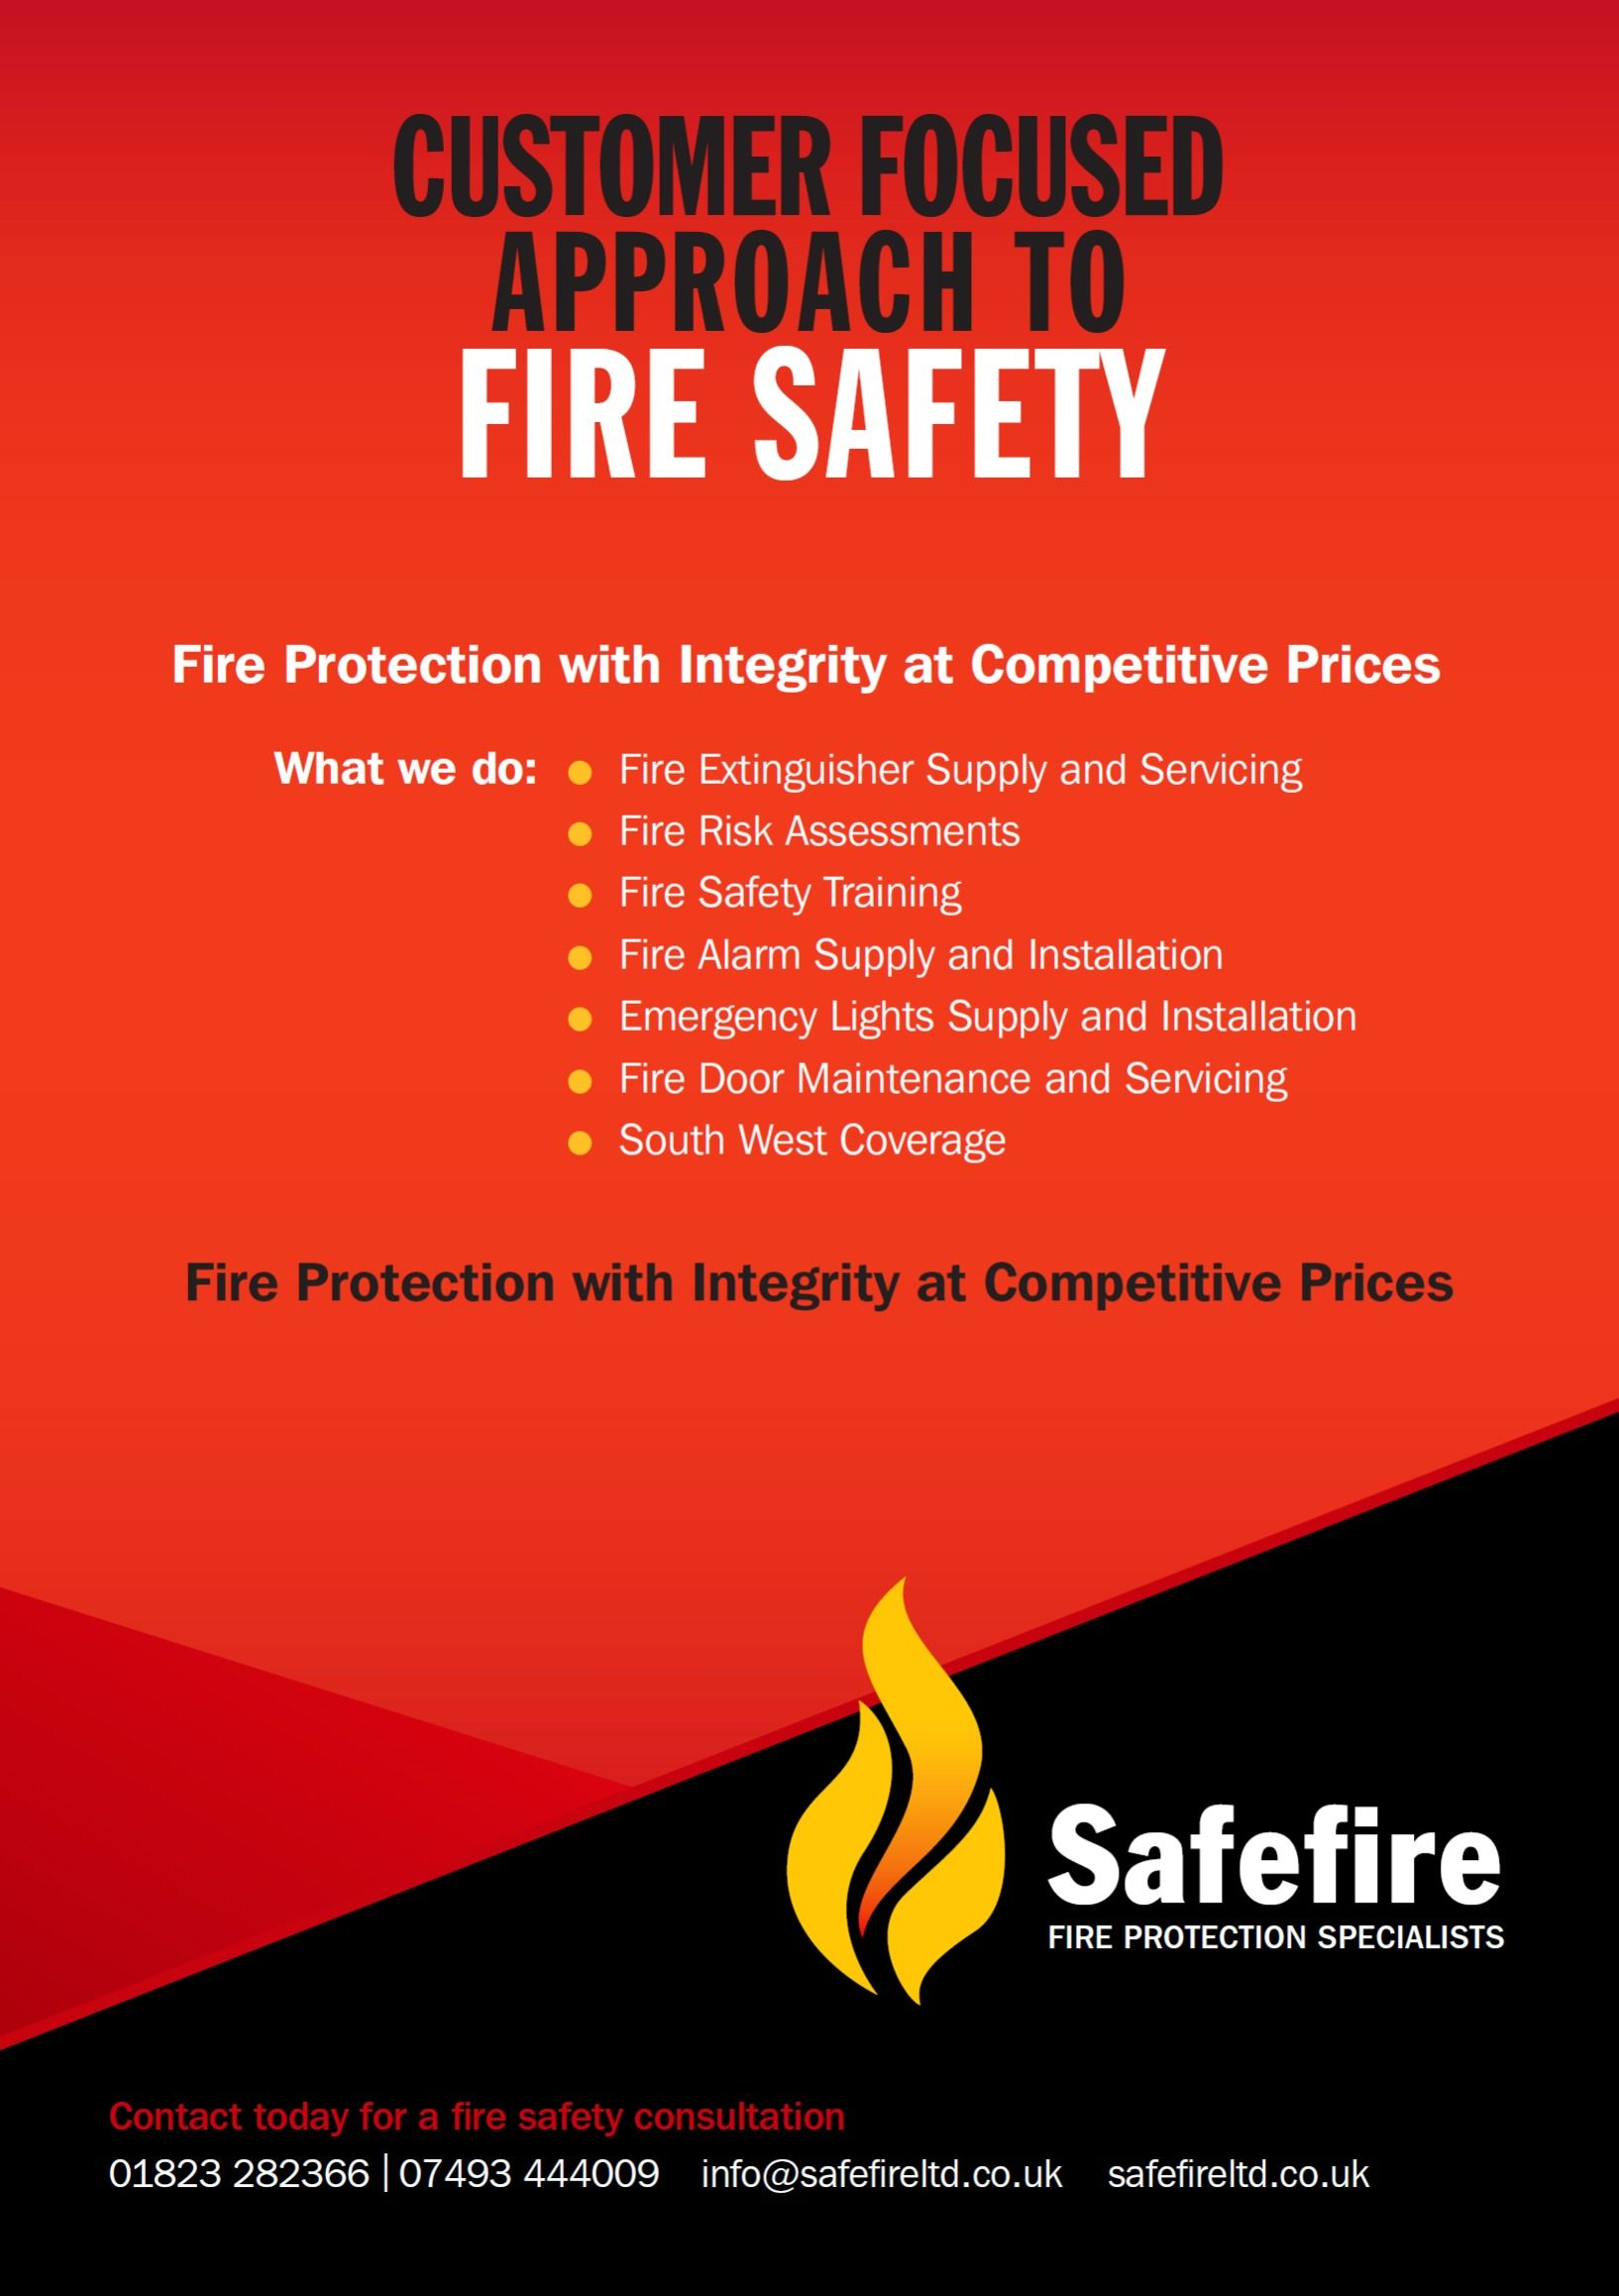 Safefire Ltd were founded to offer a truly different Fire